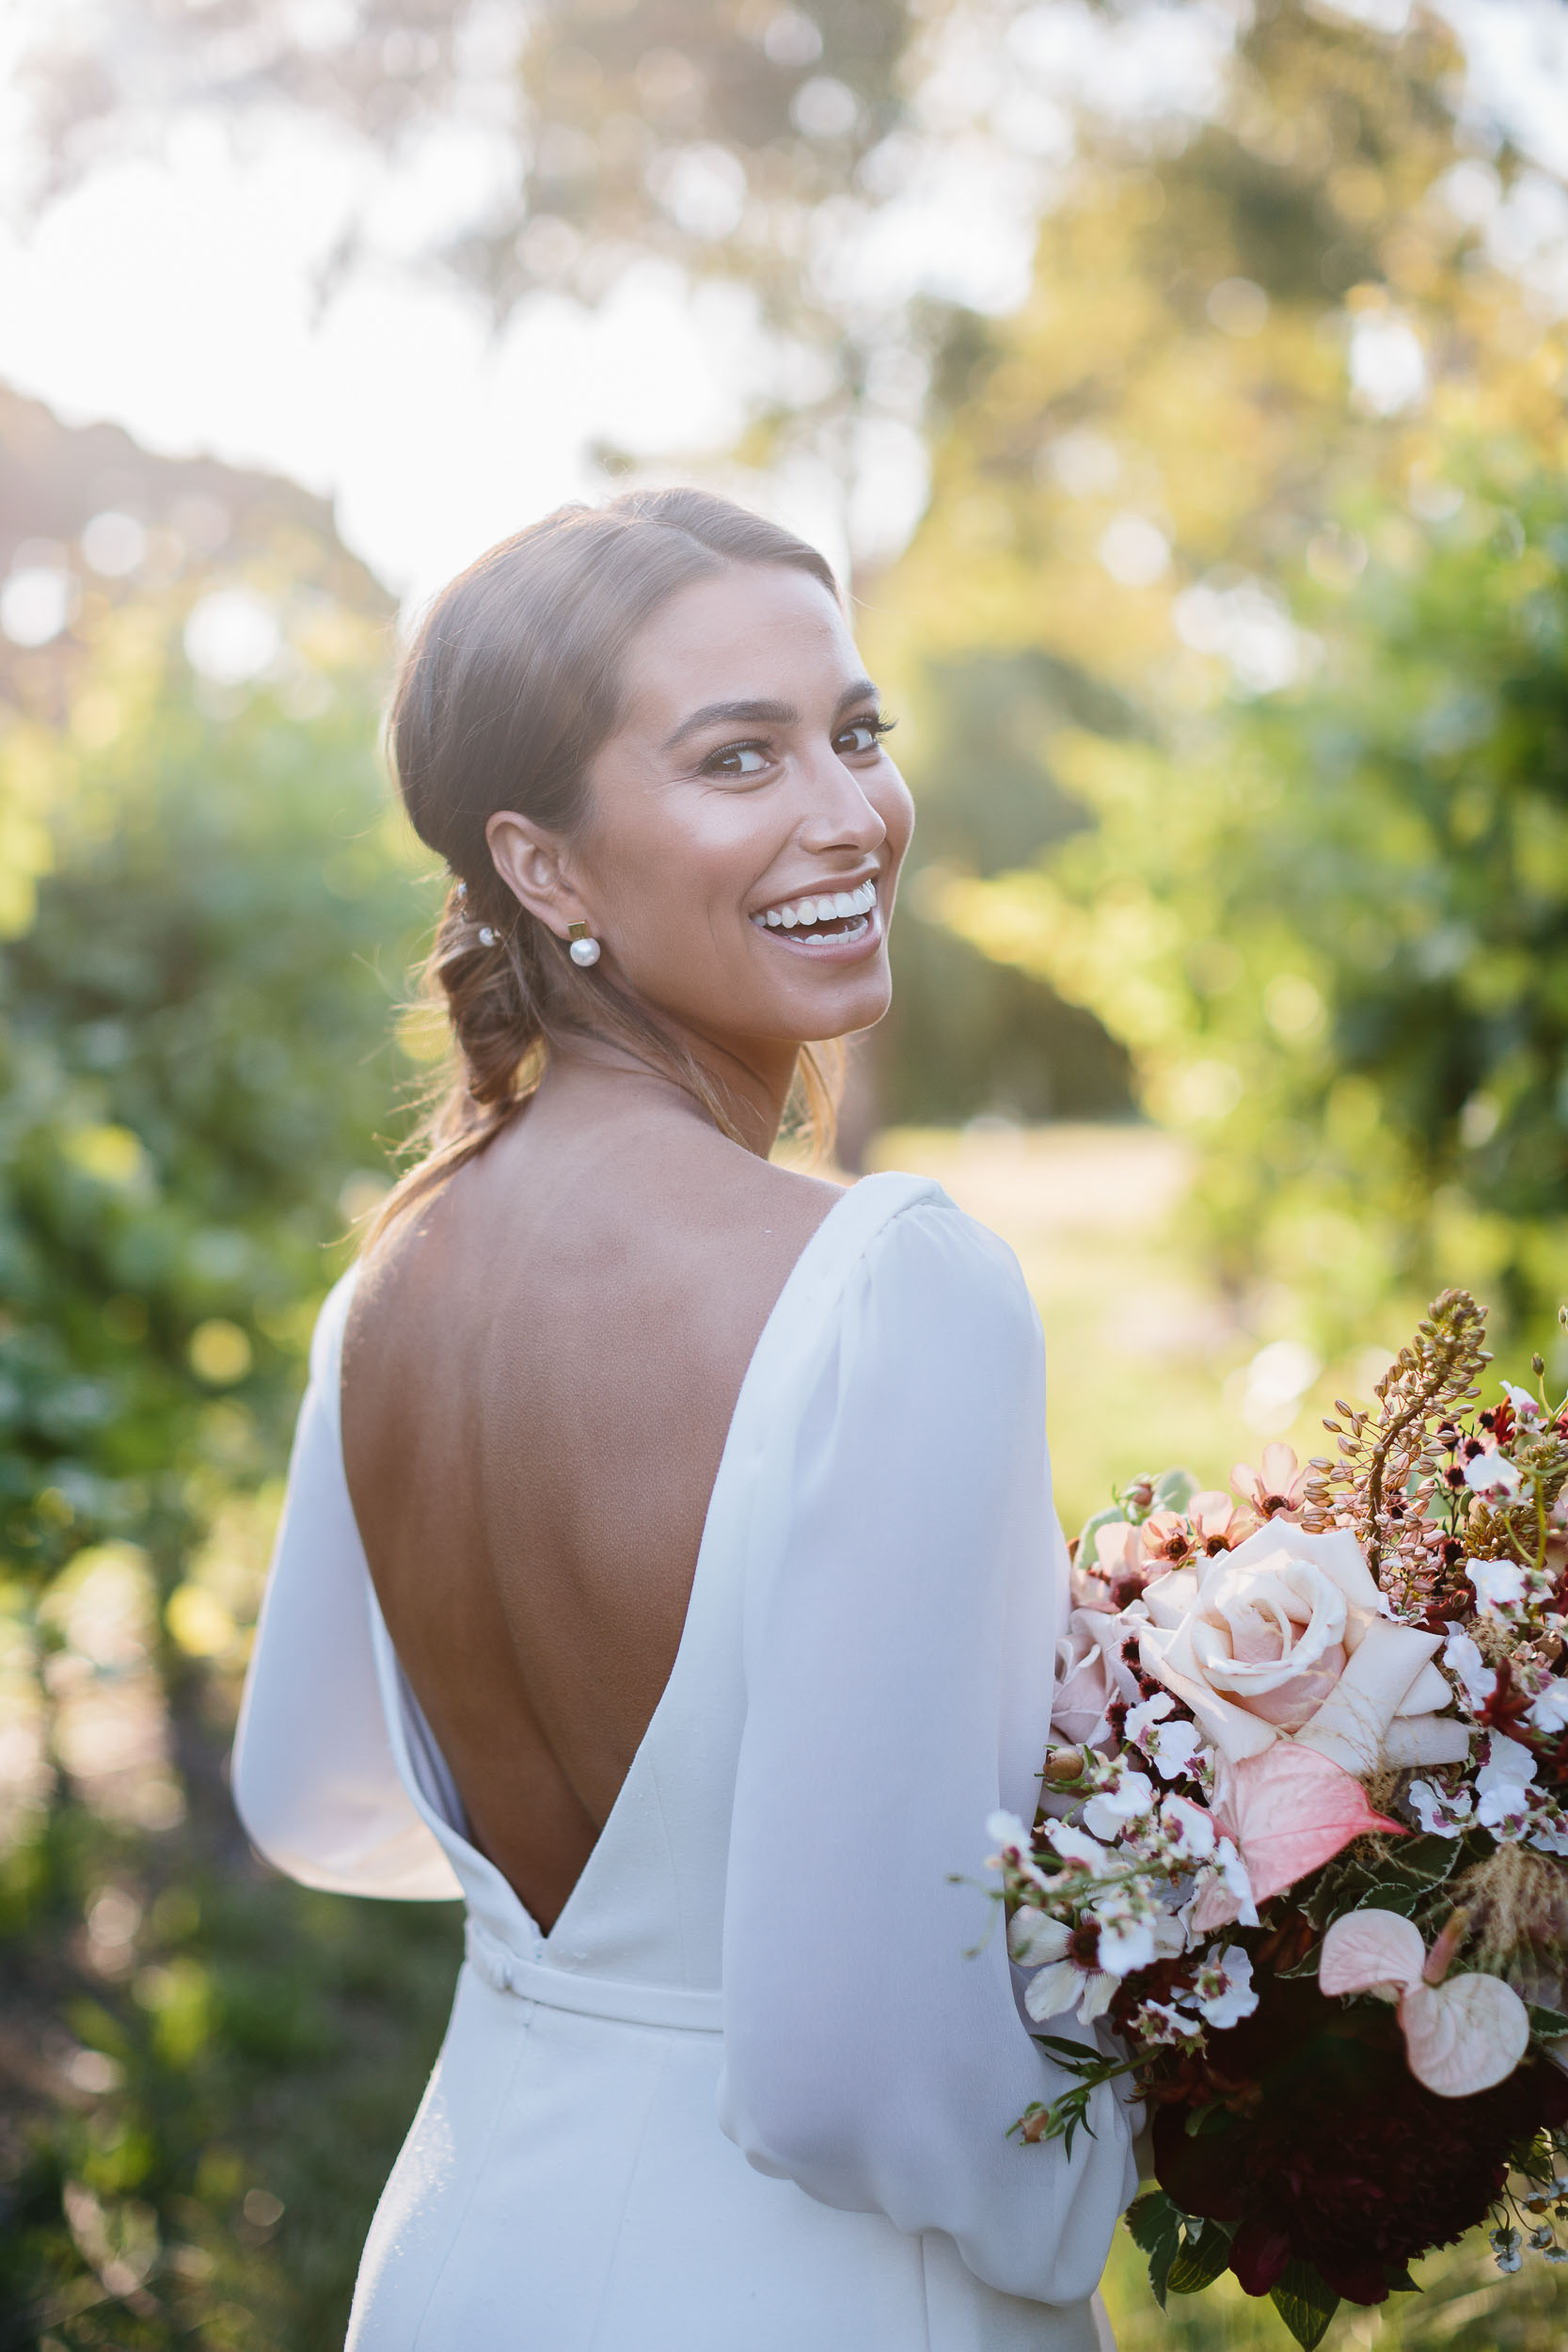 Kas-Richards-Wedding-Ediorial-Photographer-Mornington-Peninsula-Winery-Wedding-Karen-Willis-Holmes-Gown-Pop-up-with-Style-Planners-17.jpg